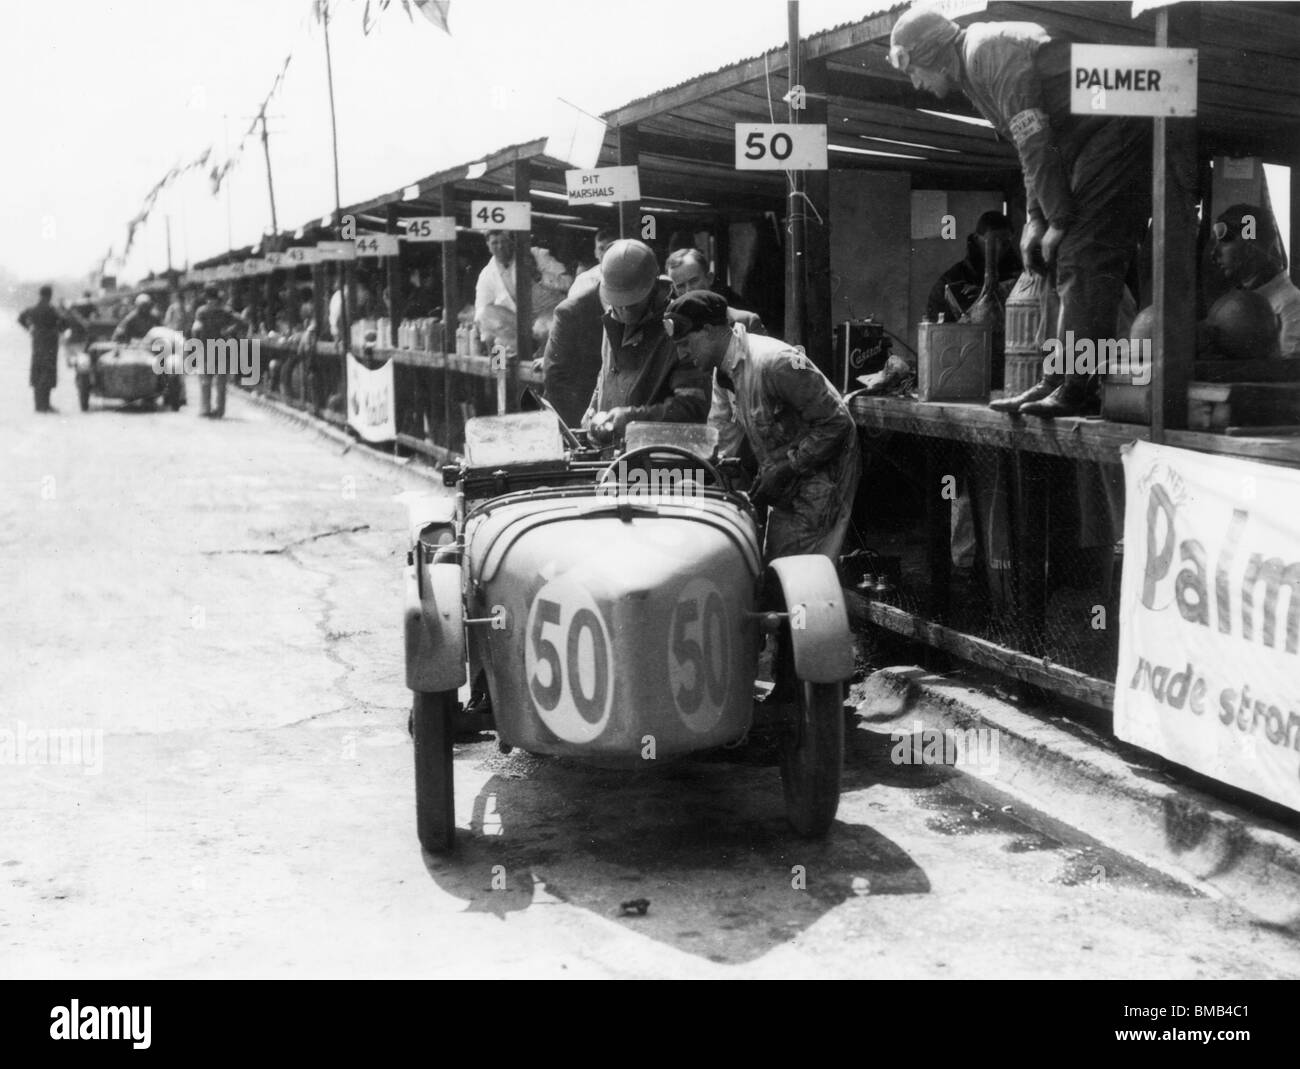 Austin 7 Ulster works in the pits at Brooklands 1930 - Stock Image